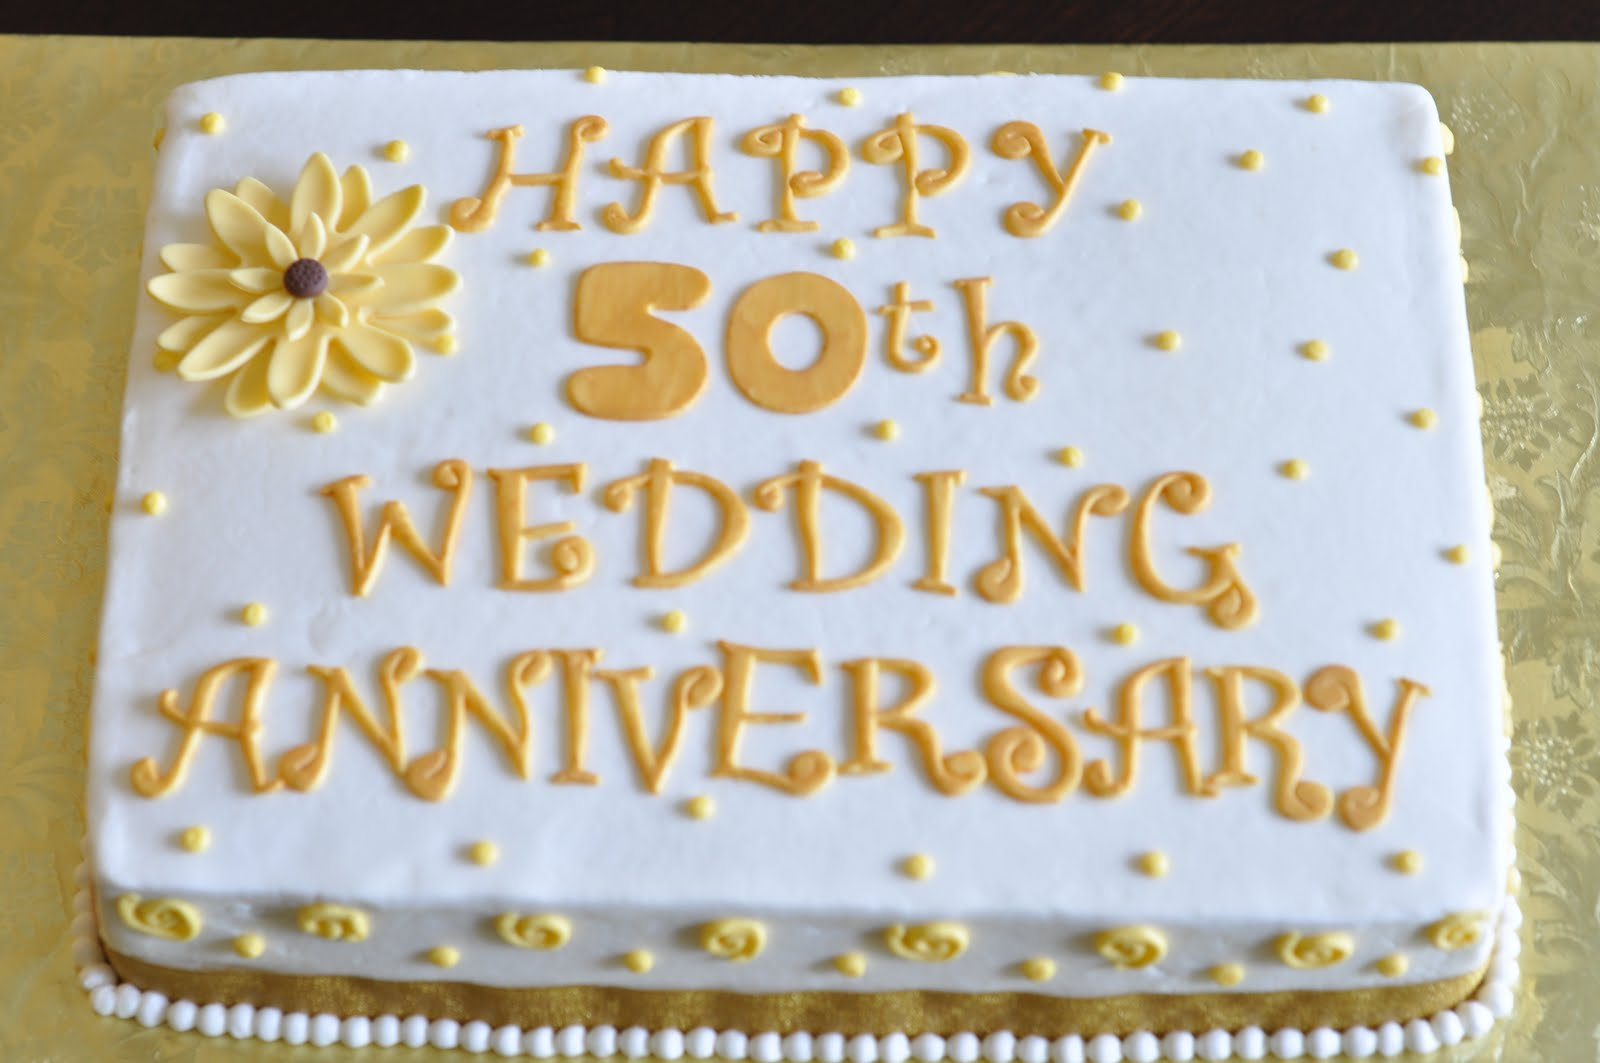 Emejing quotes for 50th wedding anniversary images styles & ideas